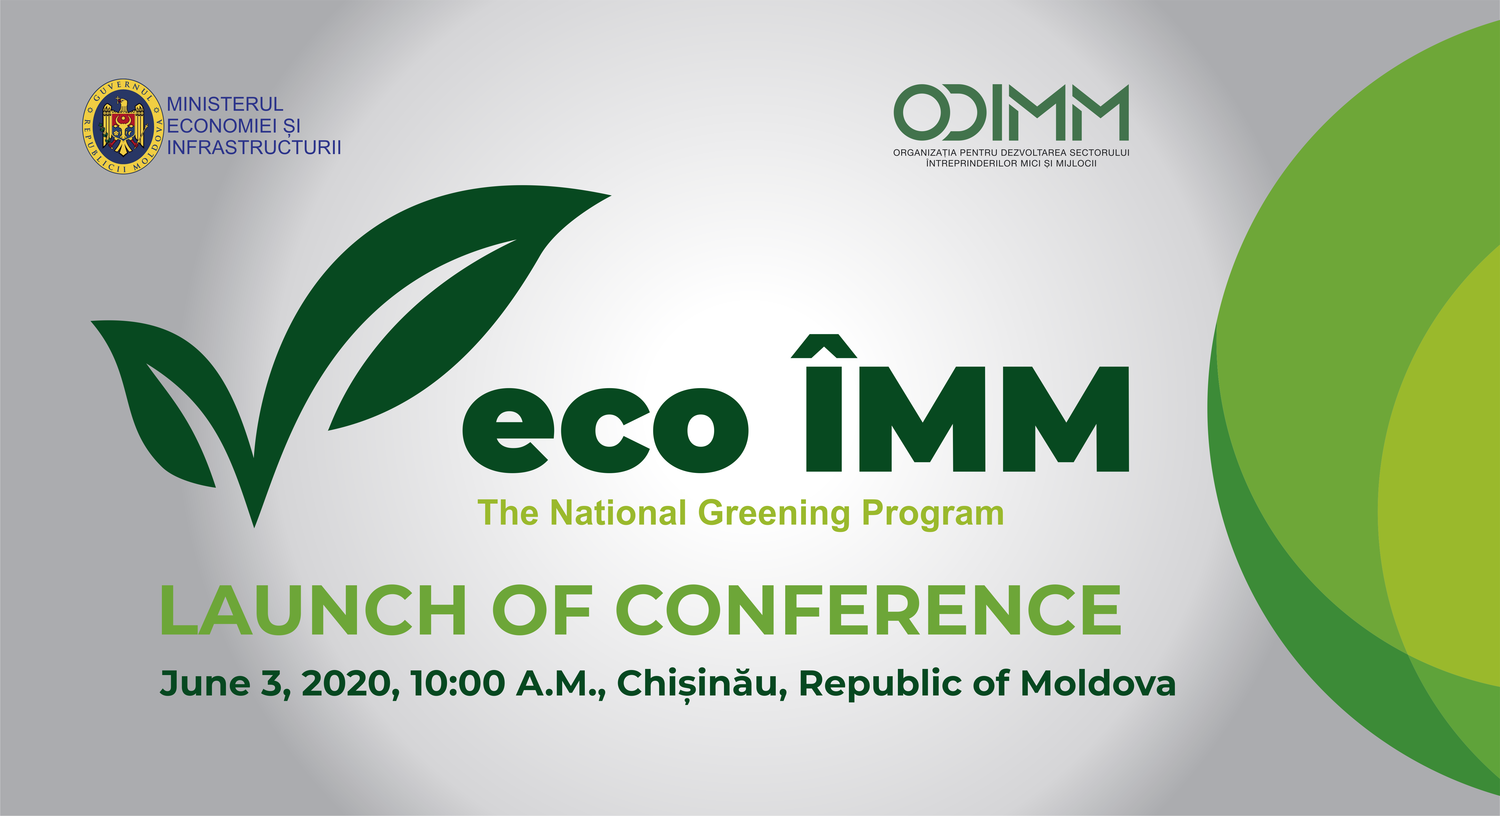 Launch of Conference of the National Greening Program